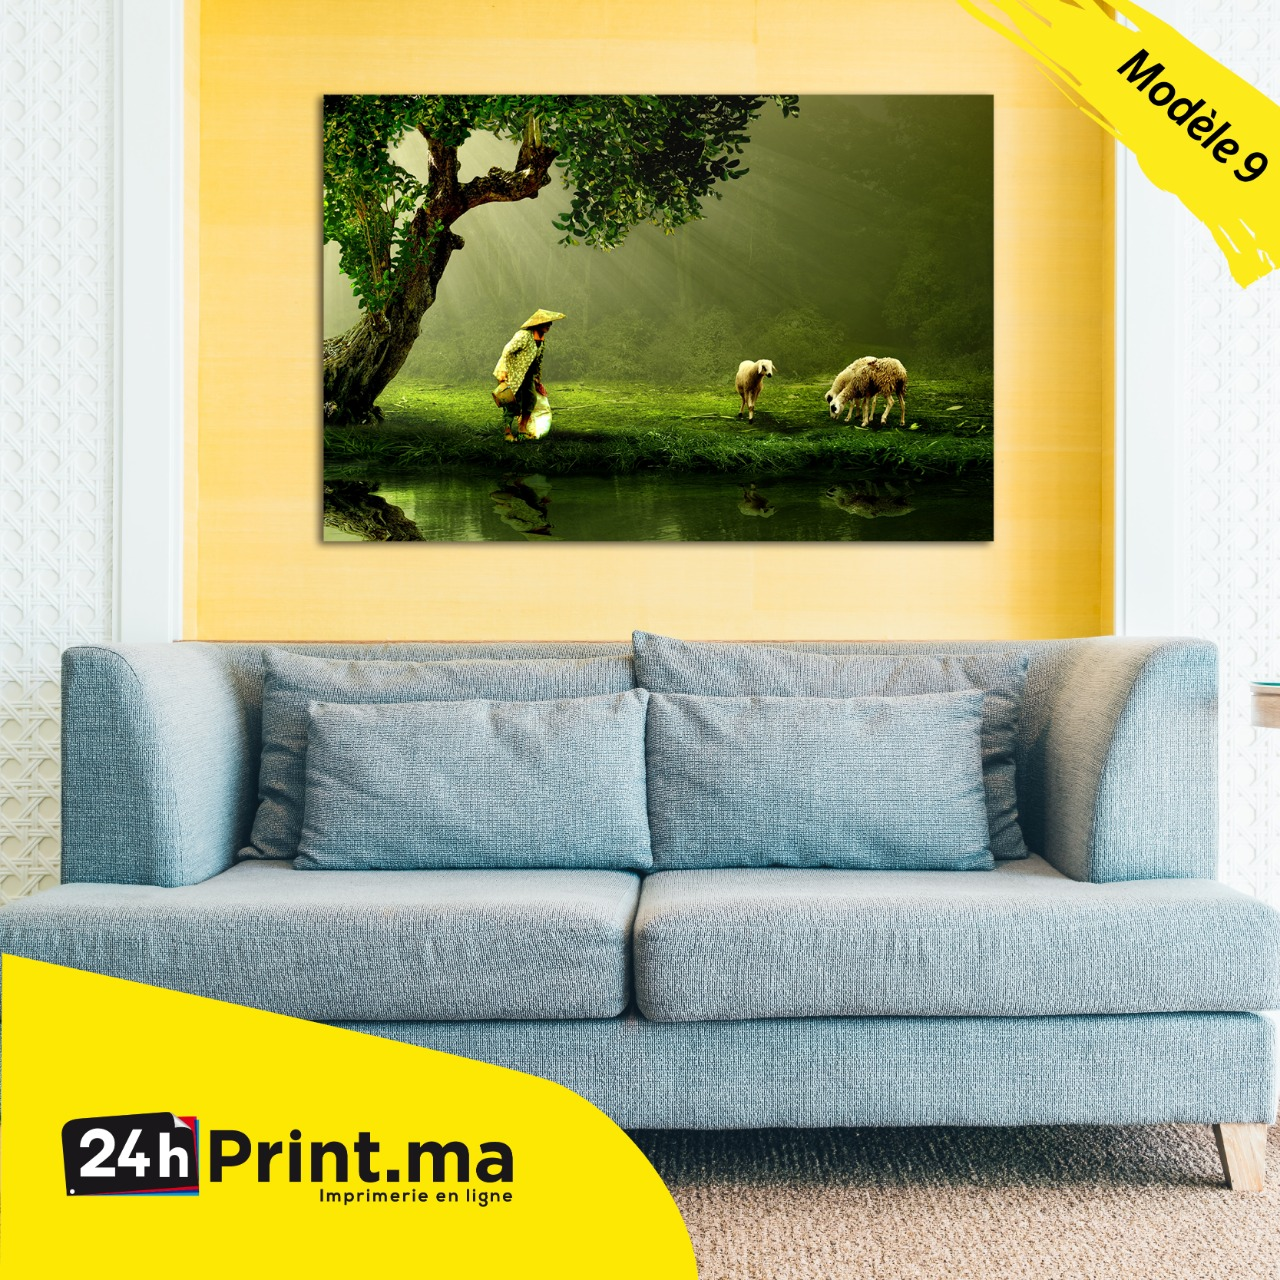 https://www.24hprint.ma/images/products_gallery_images/922.jpeg